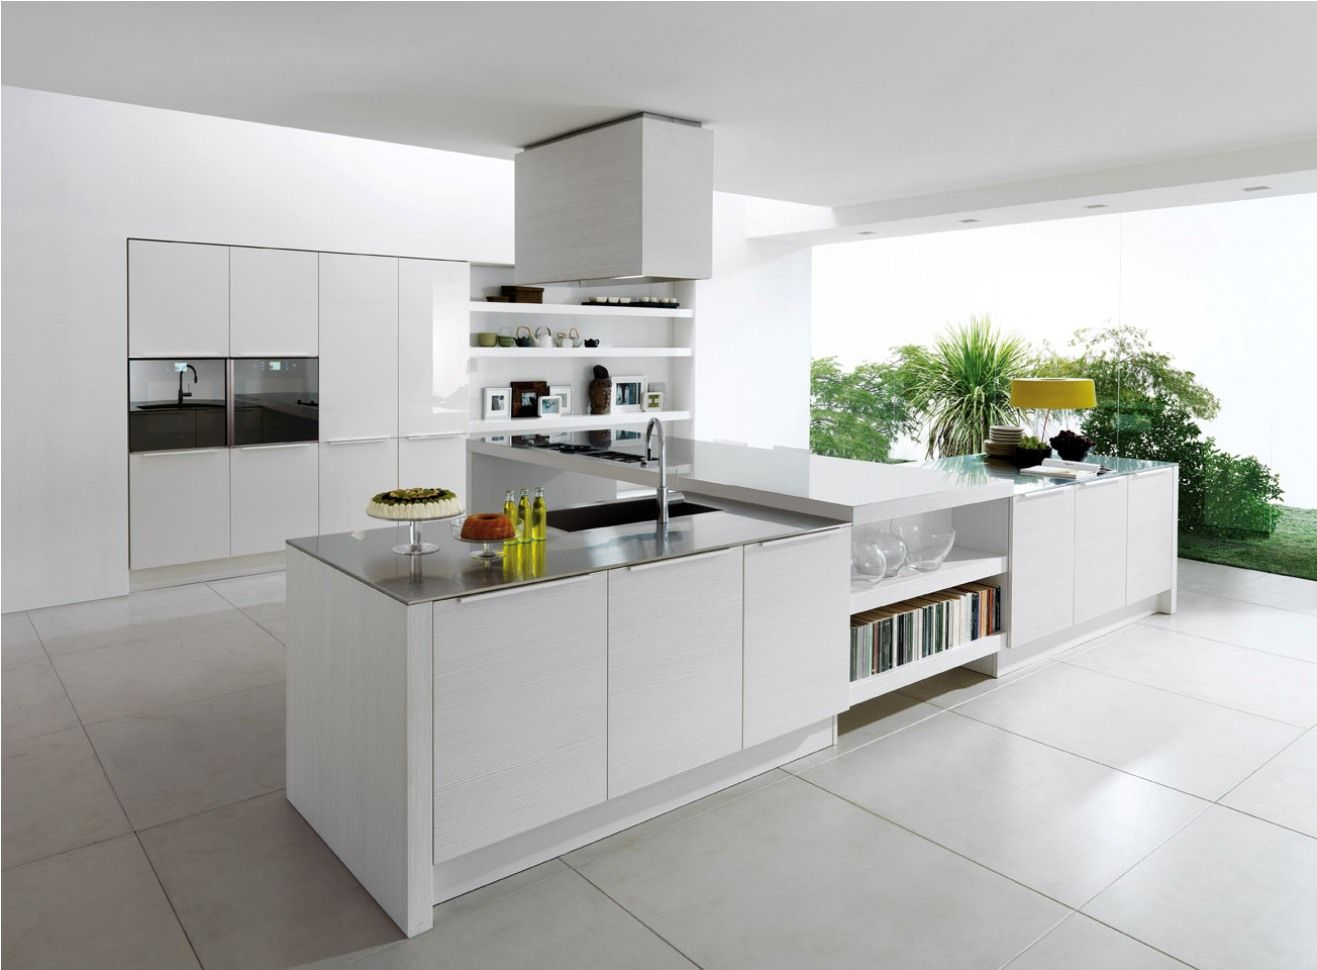 Check out 30 contemporary white kitchens ideas bright cheery and timeless white remains the kitchen color of choice